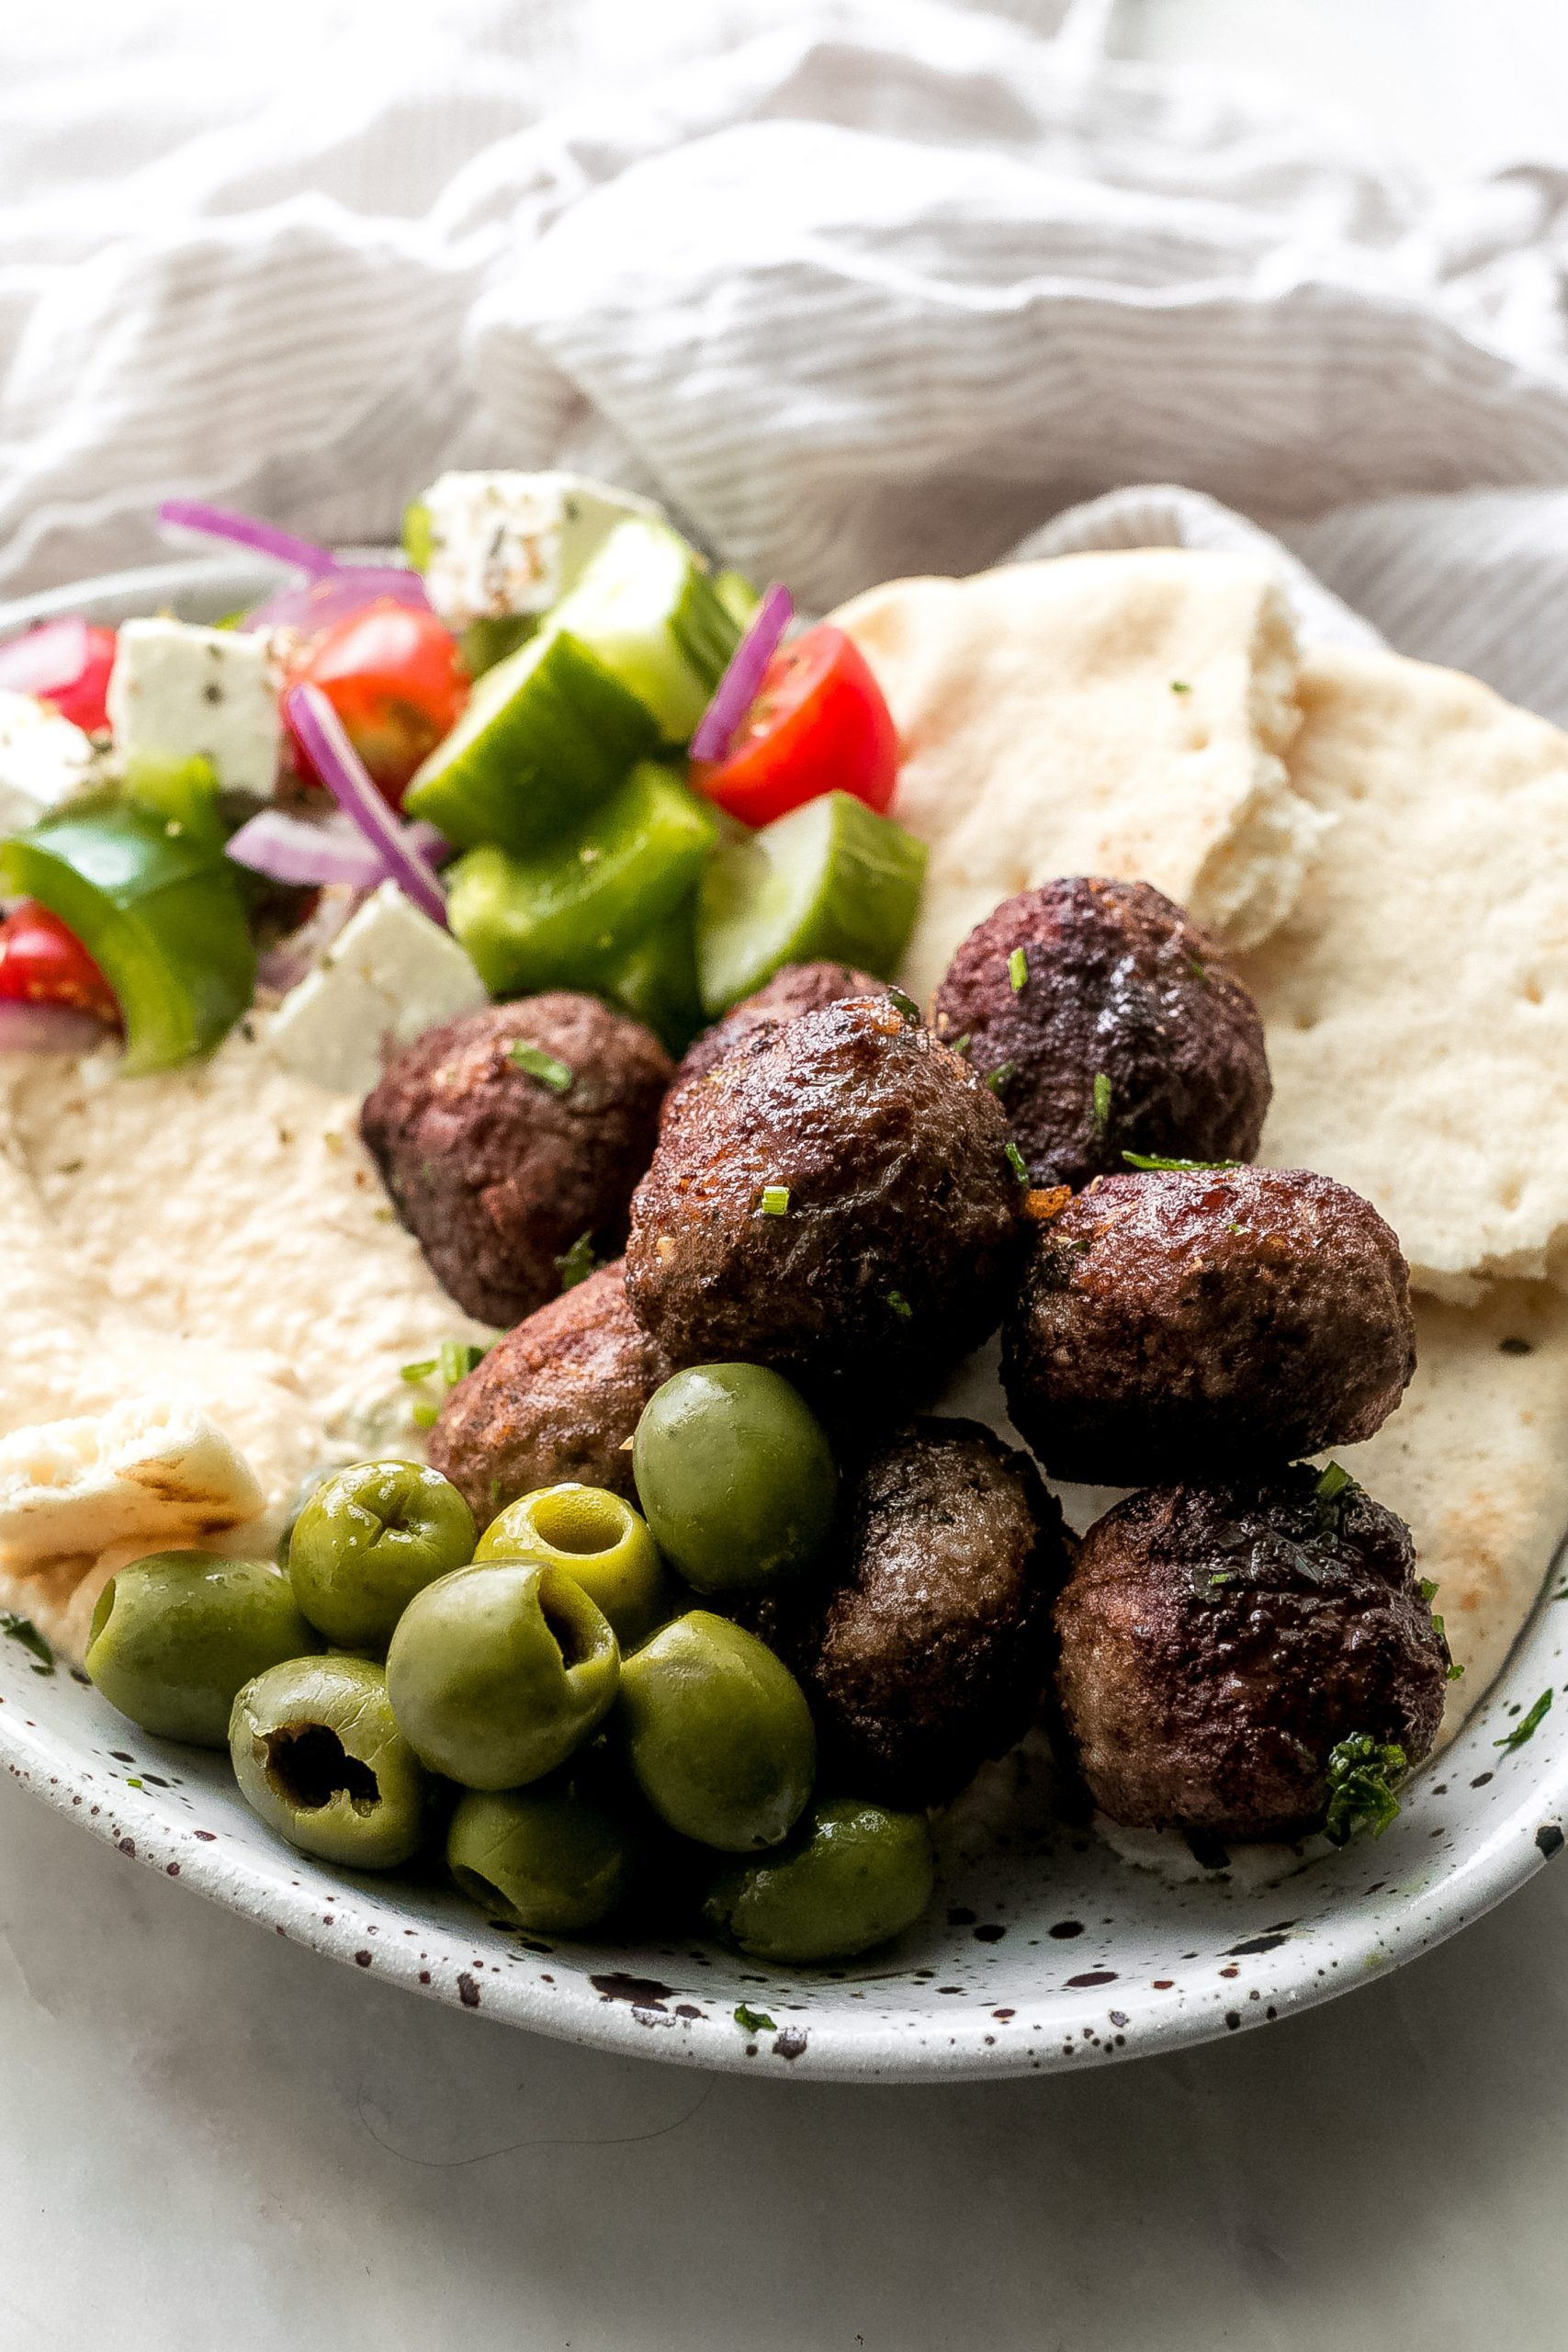 Greek Meatballs on speckled plate with hummus, bread, olives, and Greek Salad